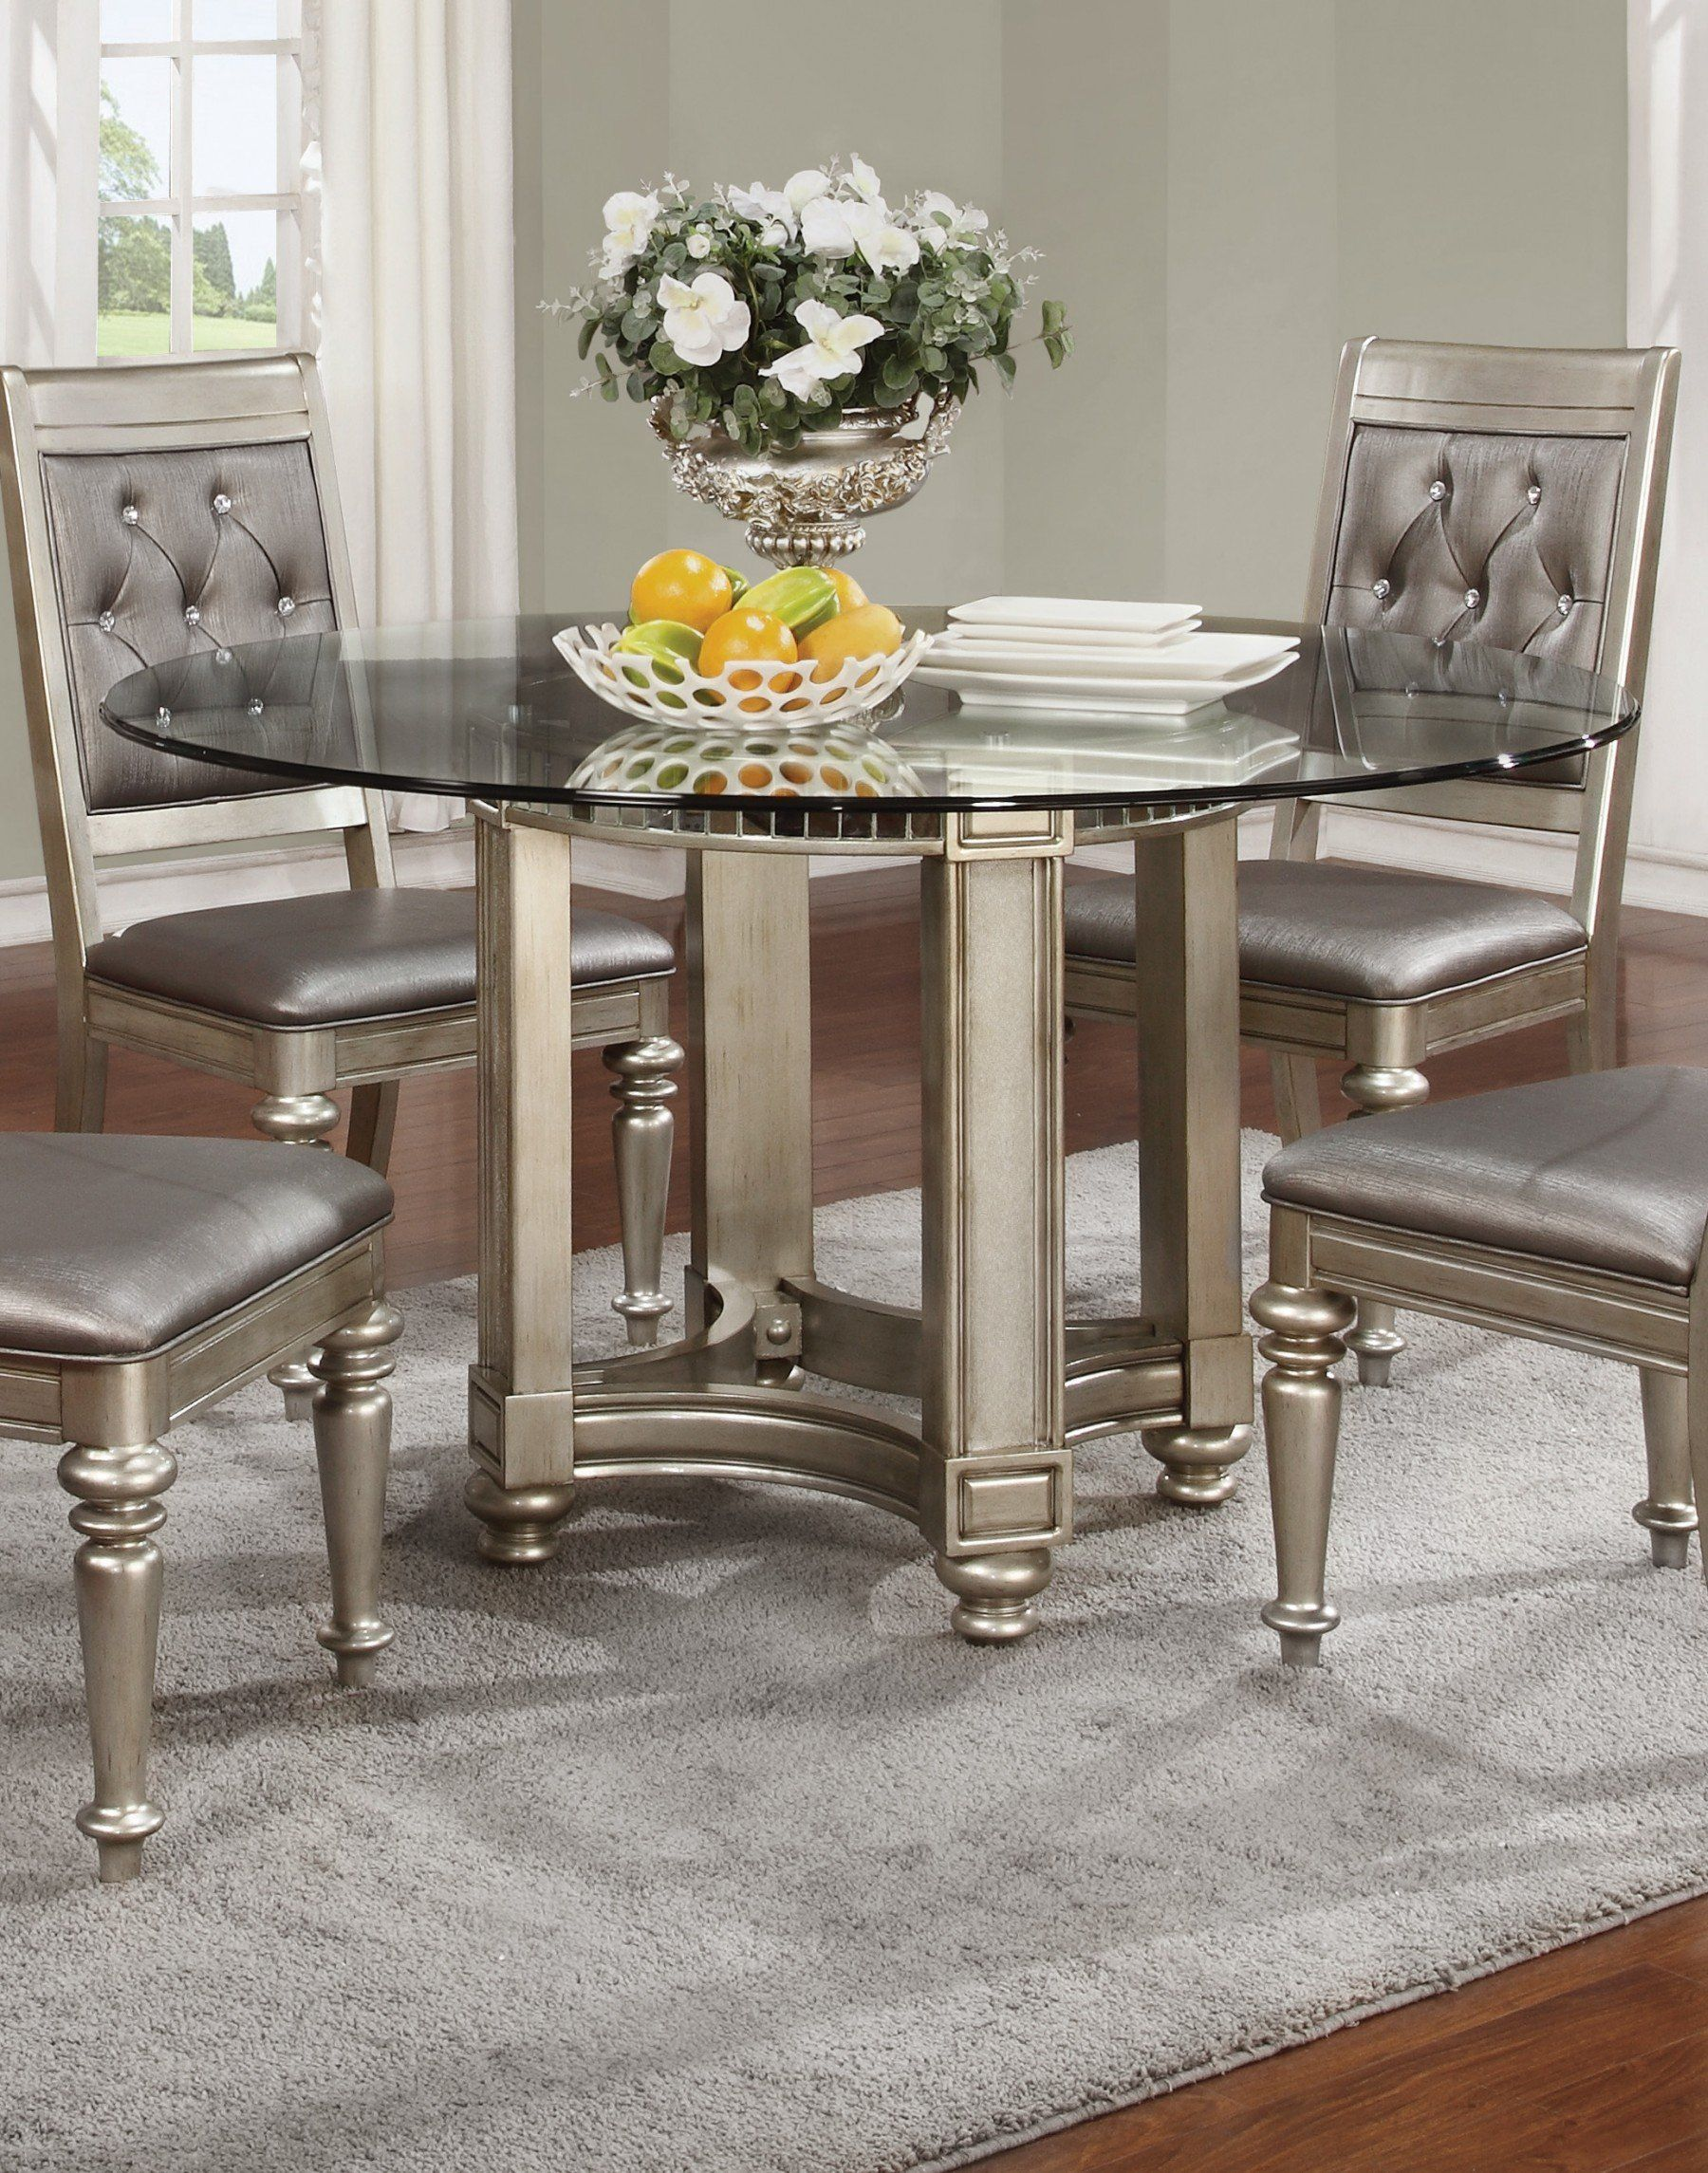 chanel glass dining table on coaster 106470 cb54rd bling game metallic platinum 2 pcs dining table round dining room round dining room sets round dining table round dining room sets round dining table